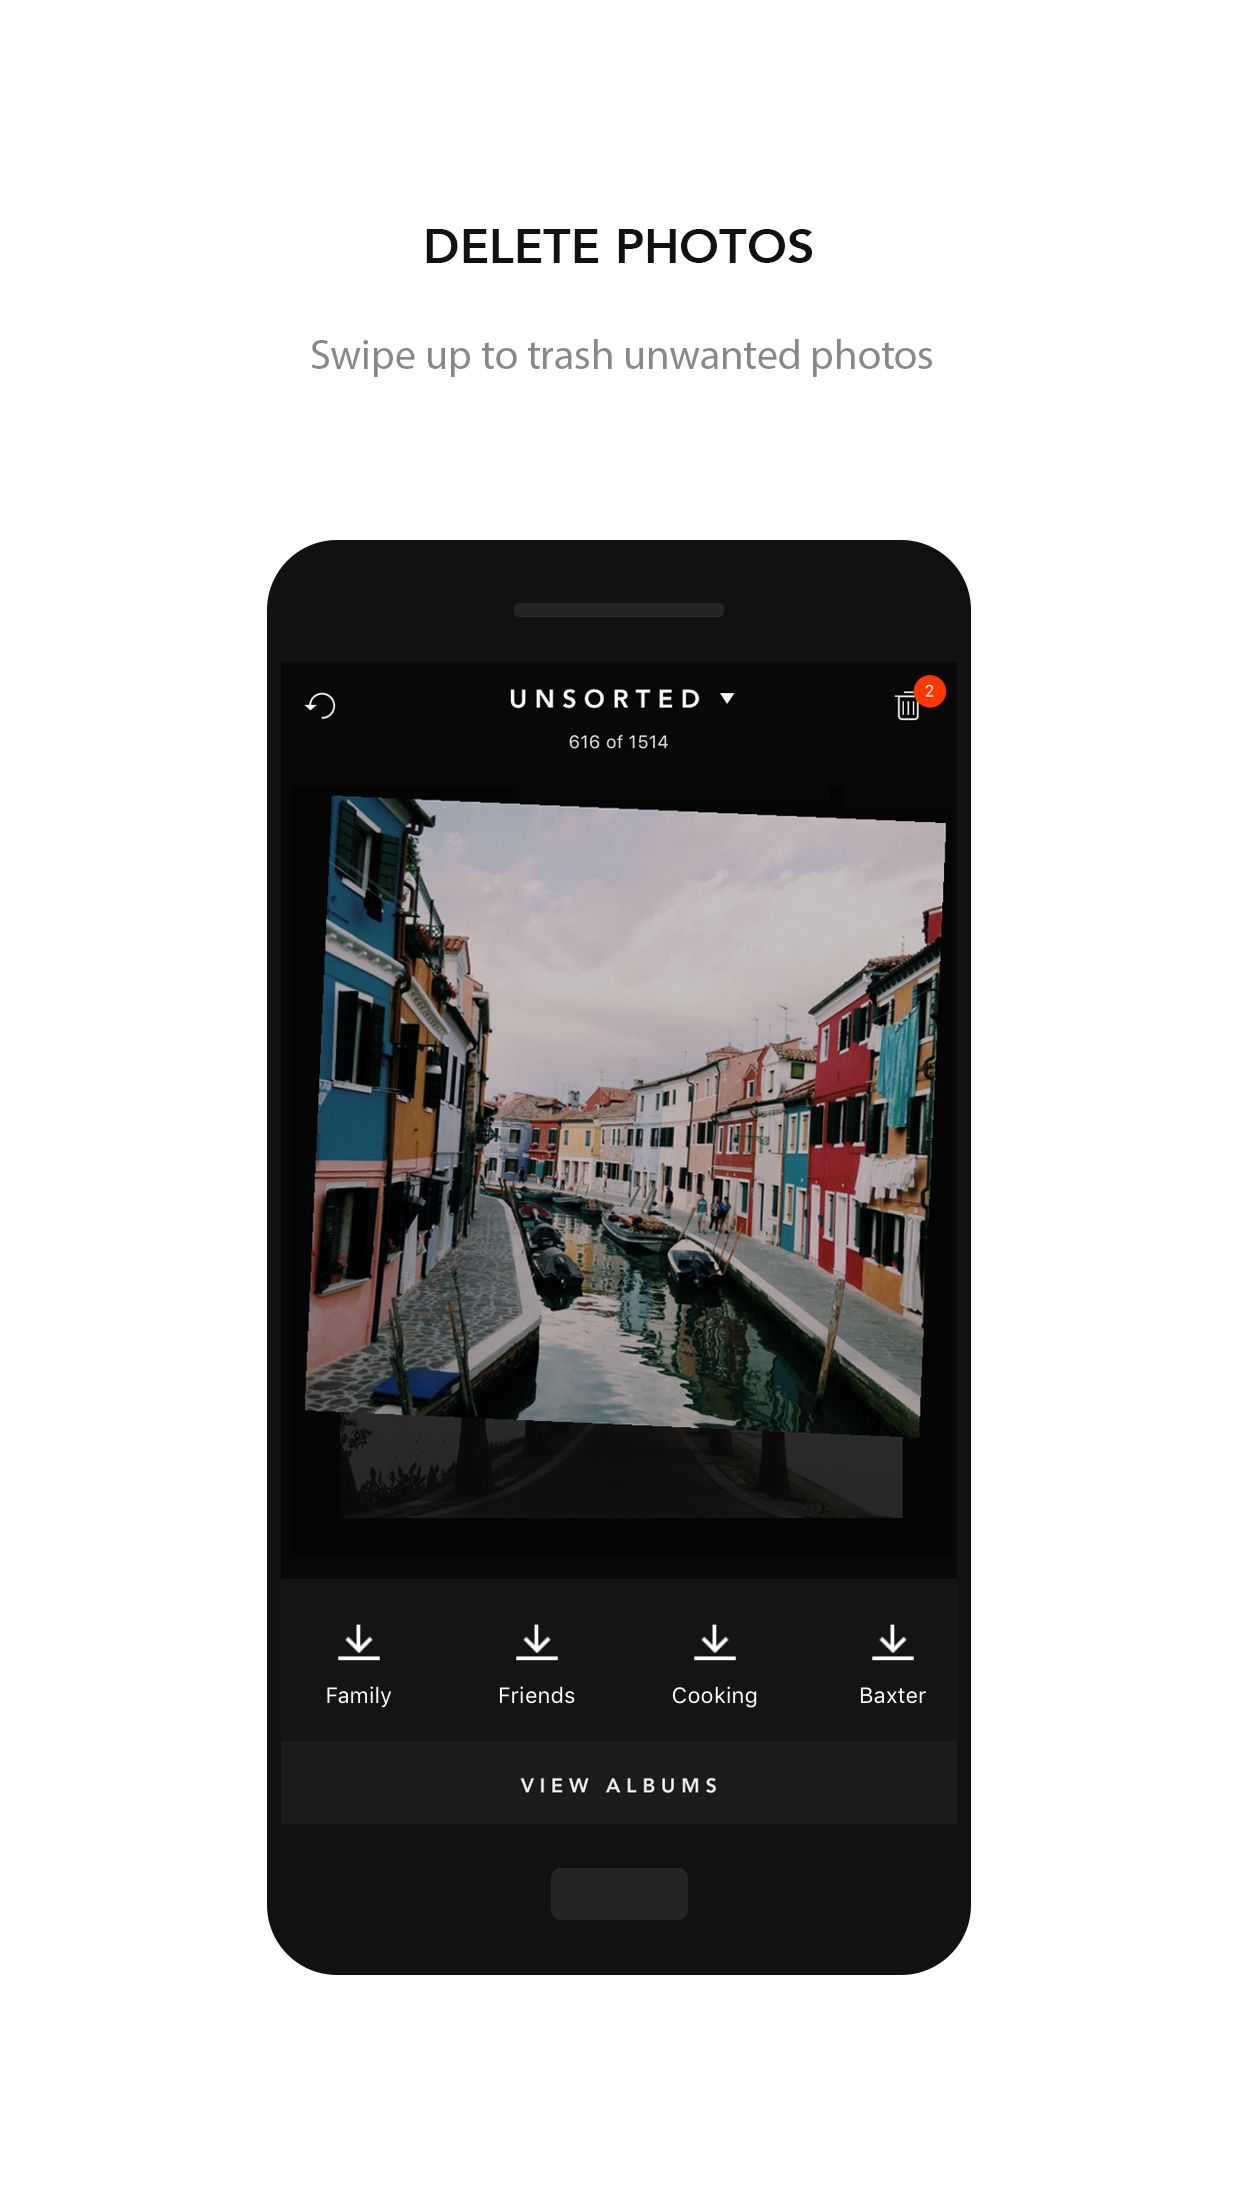 Slidebox brings its Tinderlike photo management app to